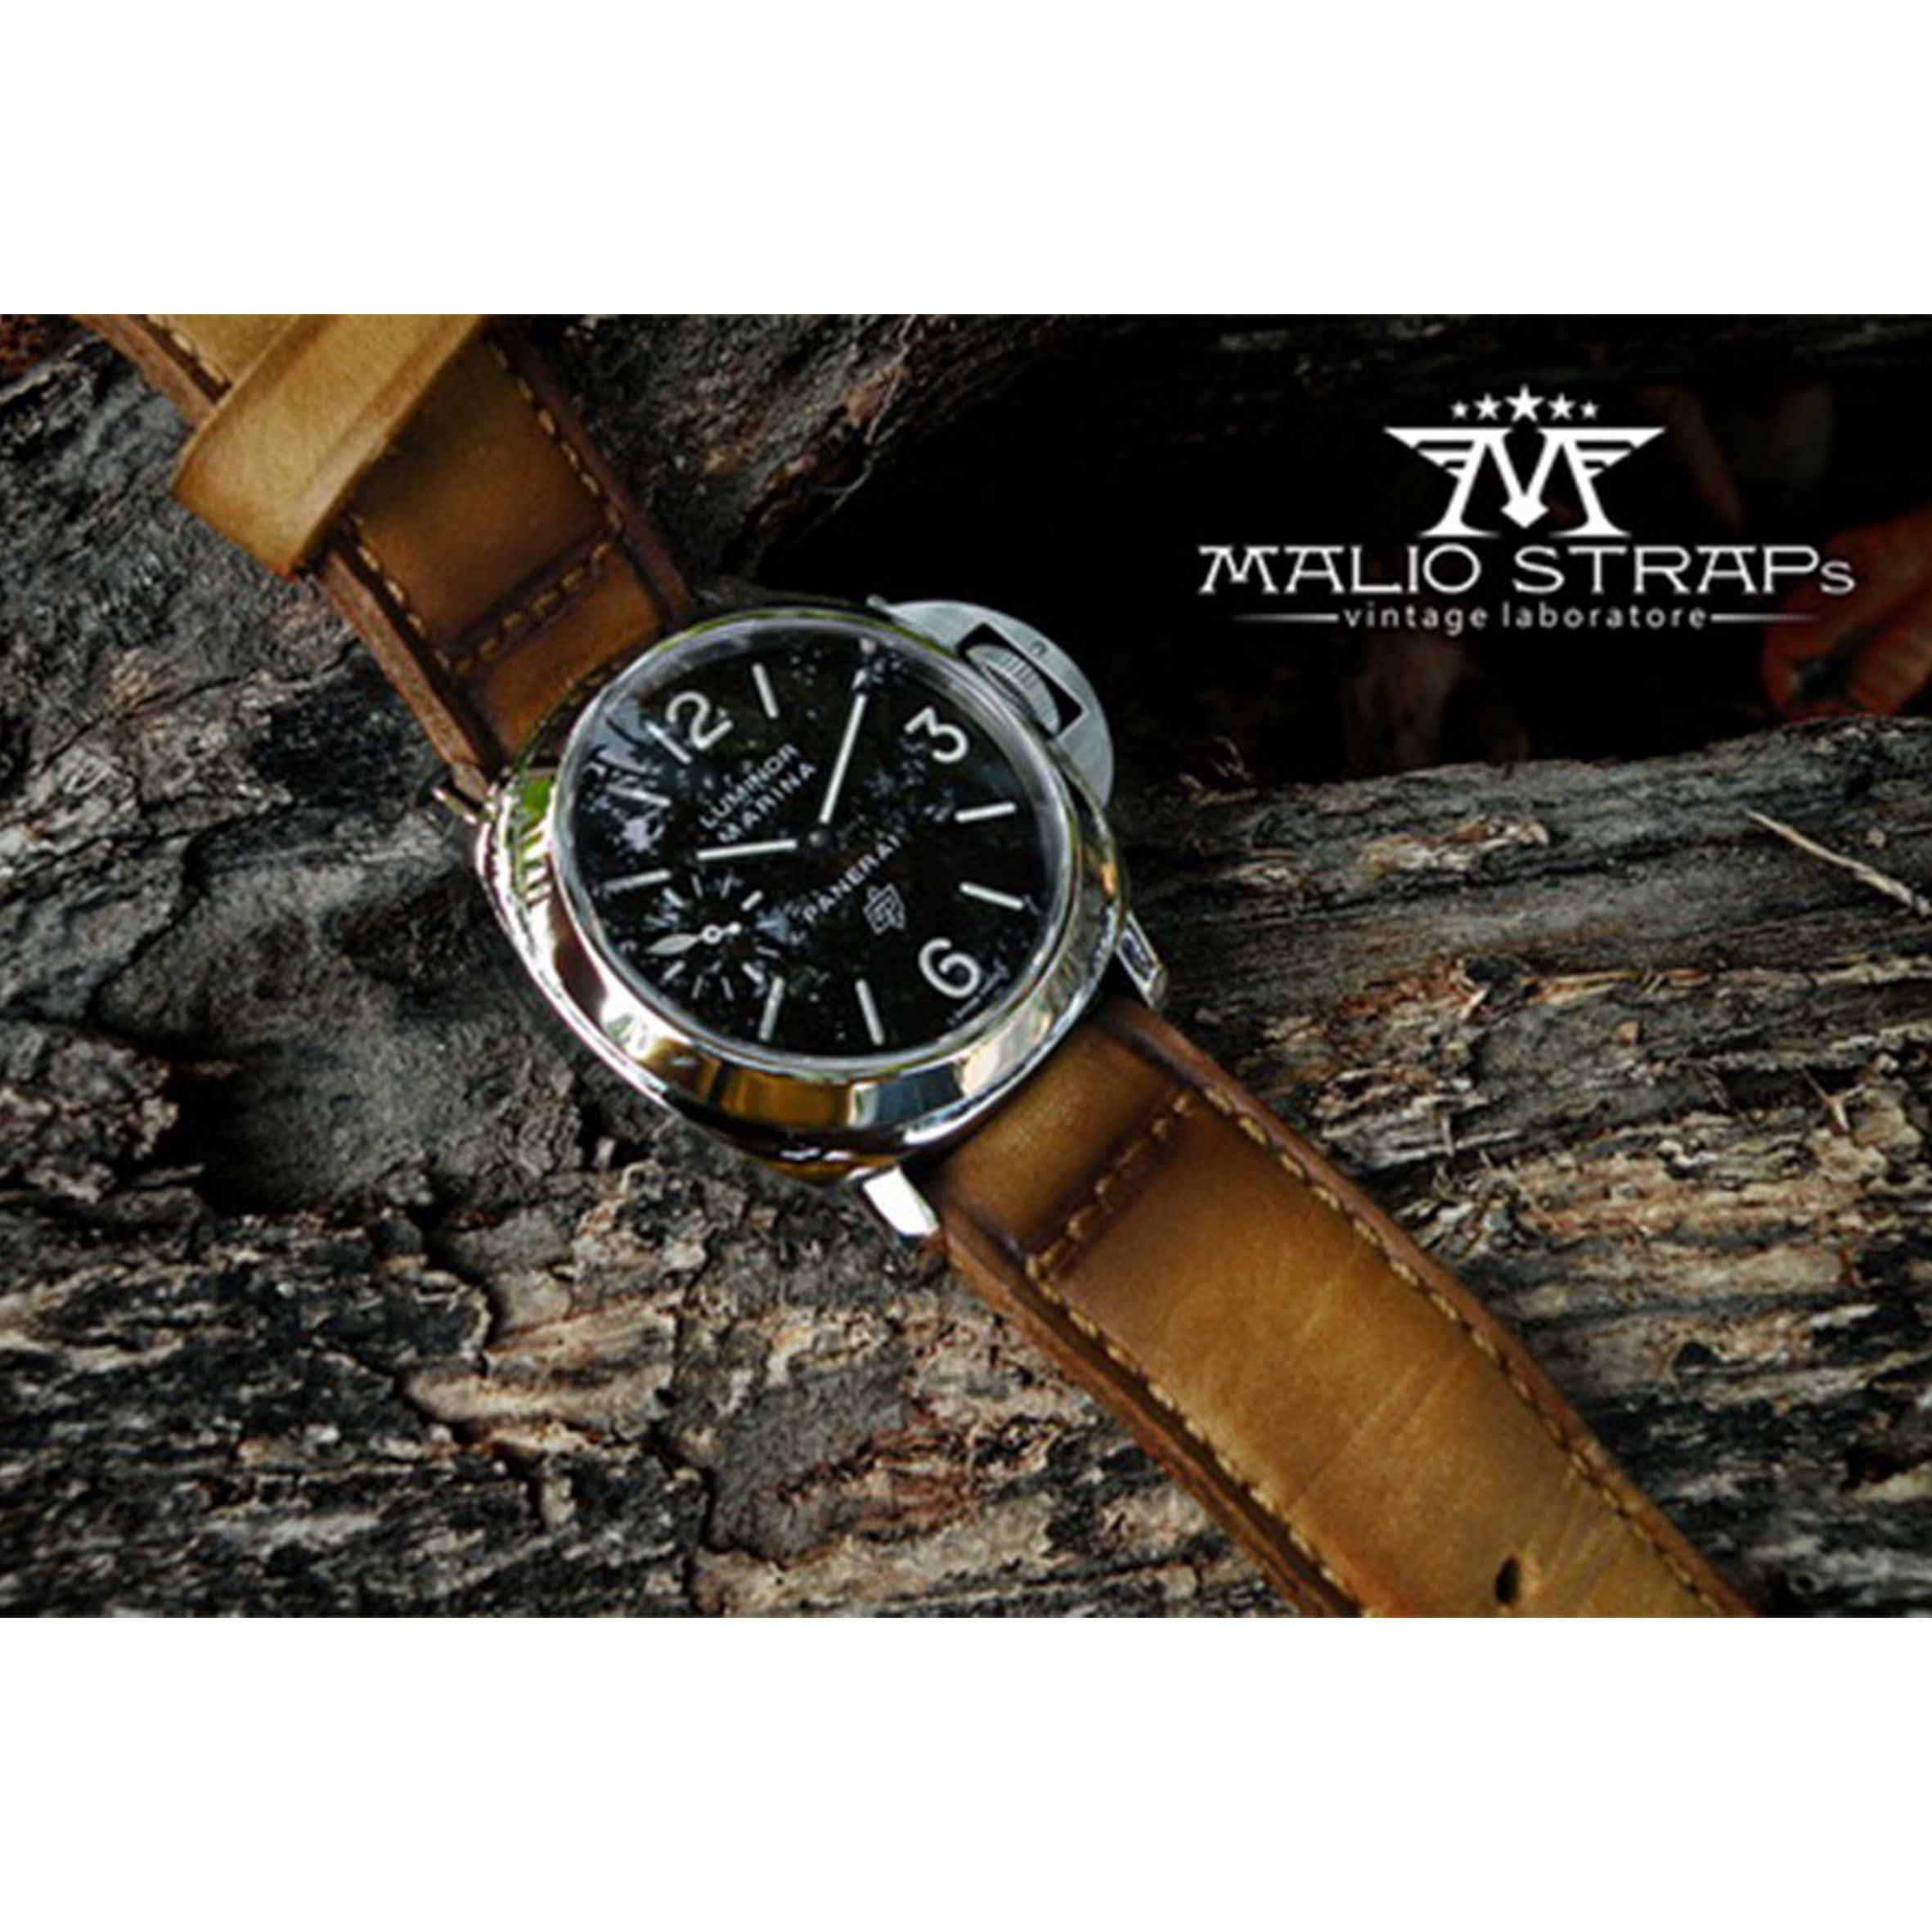 malio-straps-crostino-2-panerai-luminor